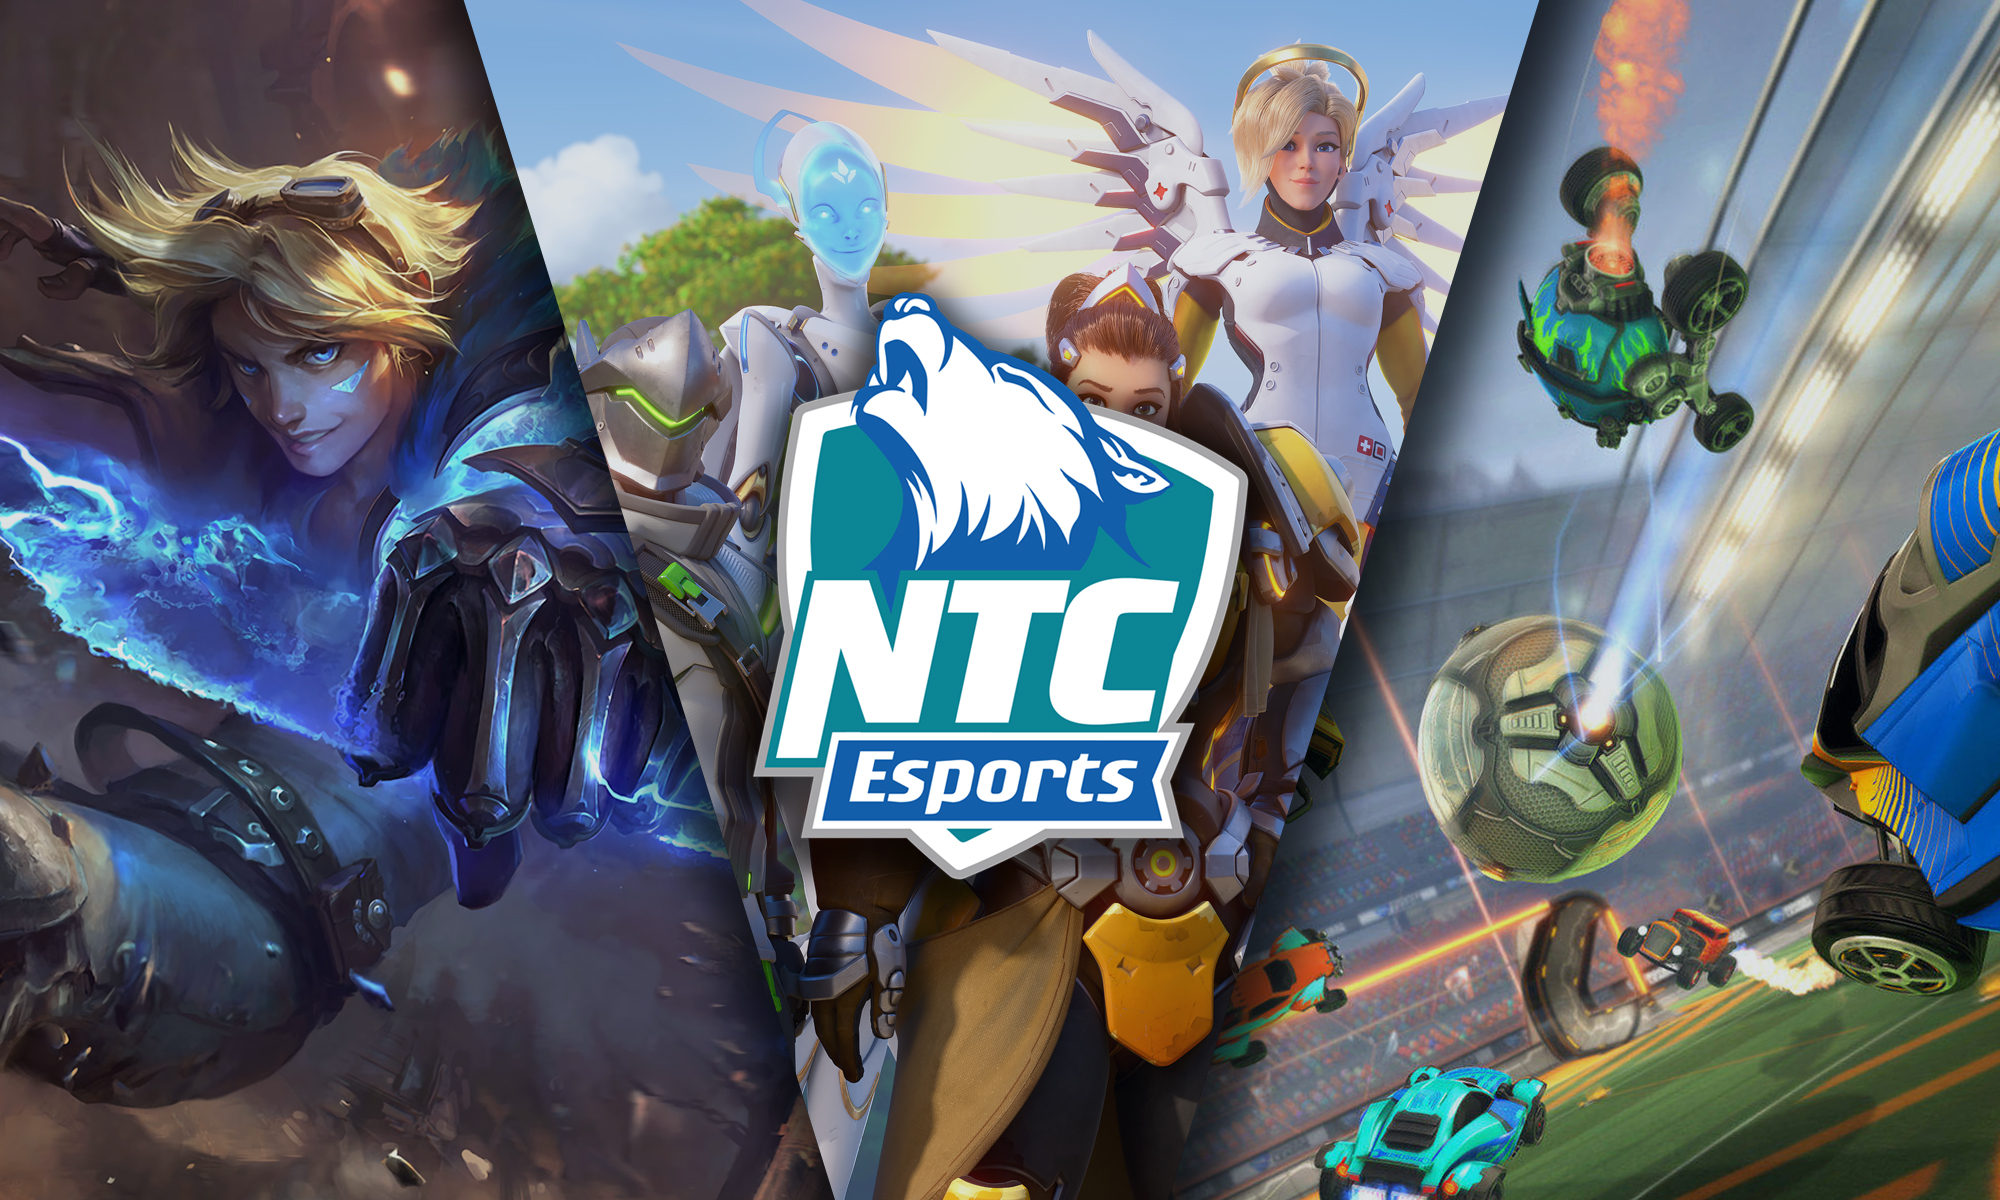 Characters from Overwatch, League of Legends, and Rocket League are grouped together with the Timnerwolves esports logo